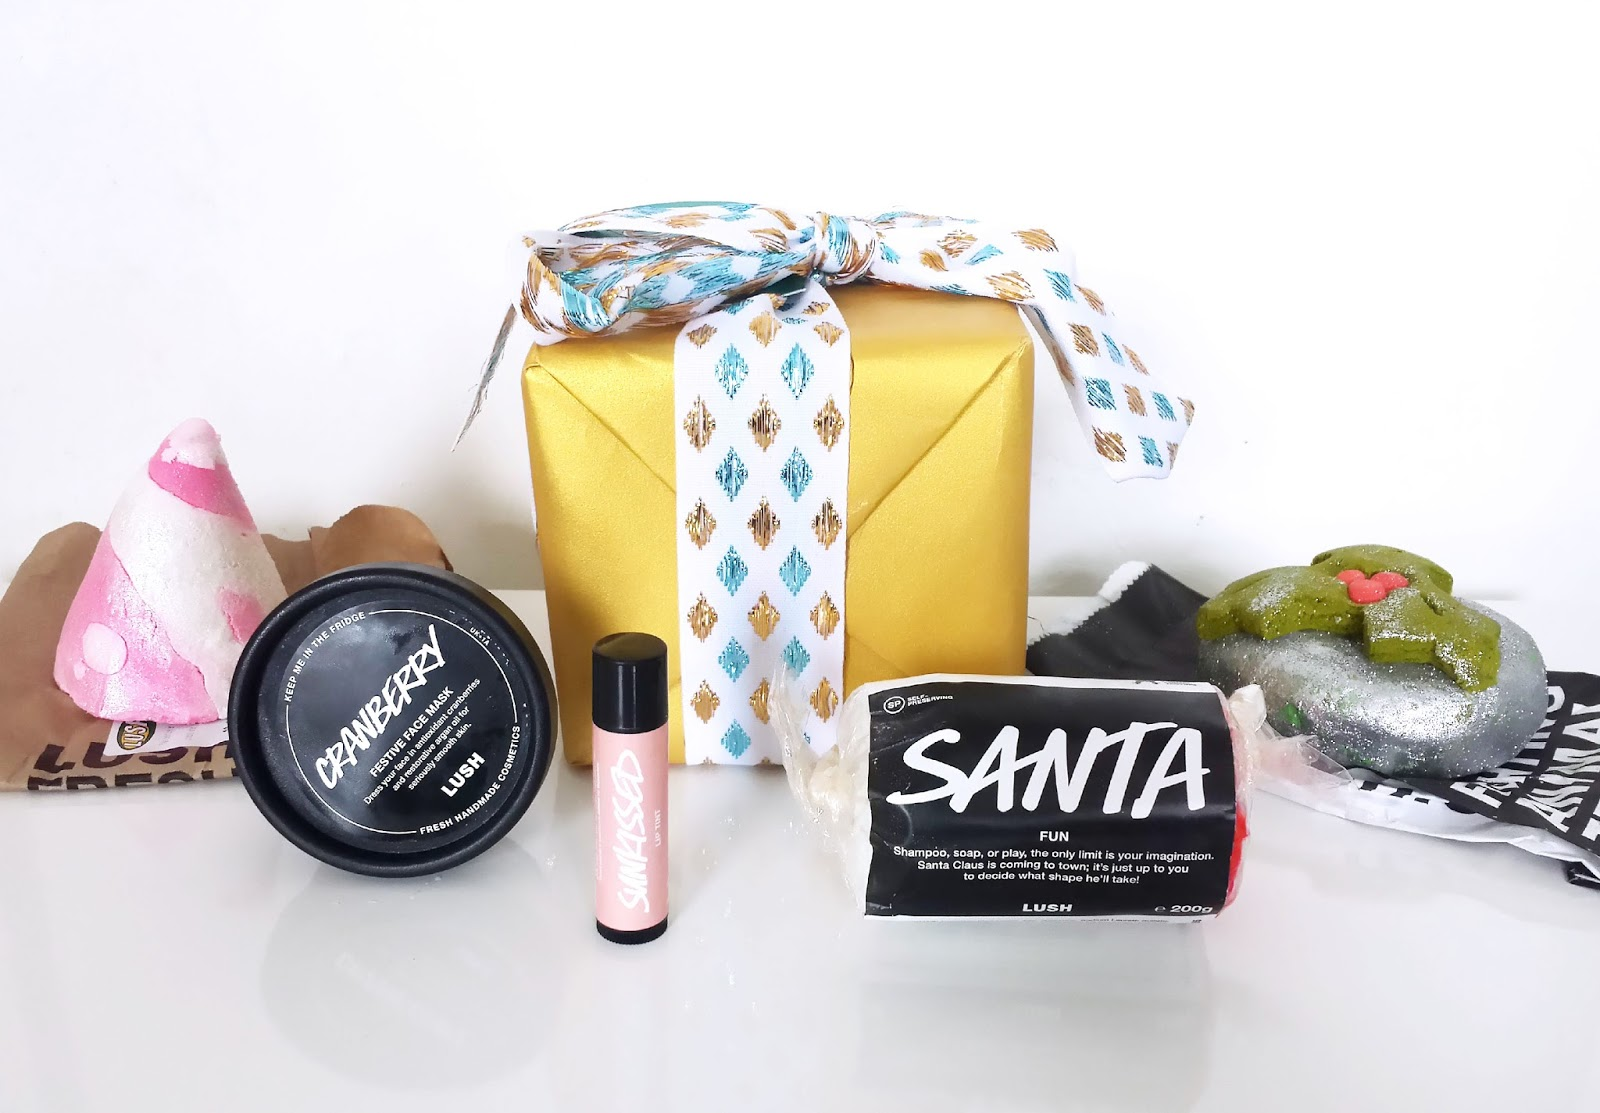 Lush Cardiff Christmas Event